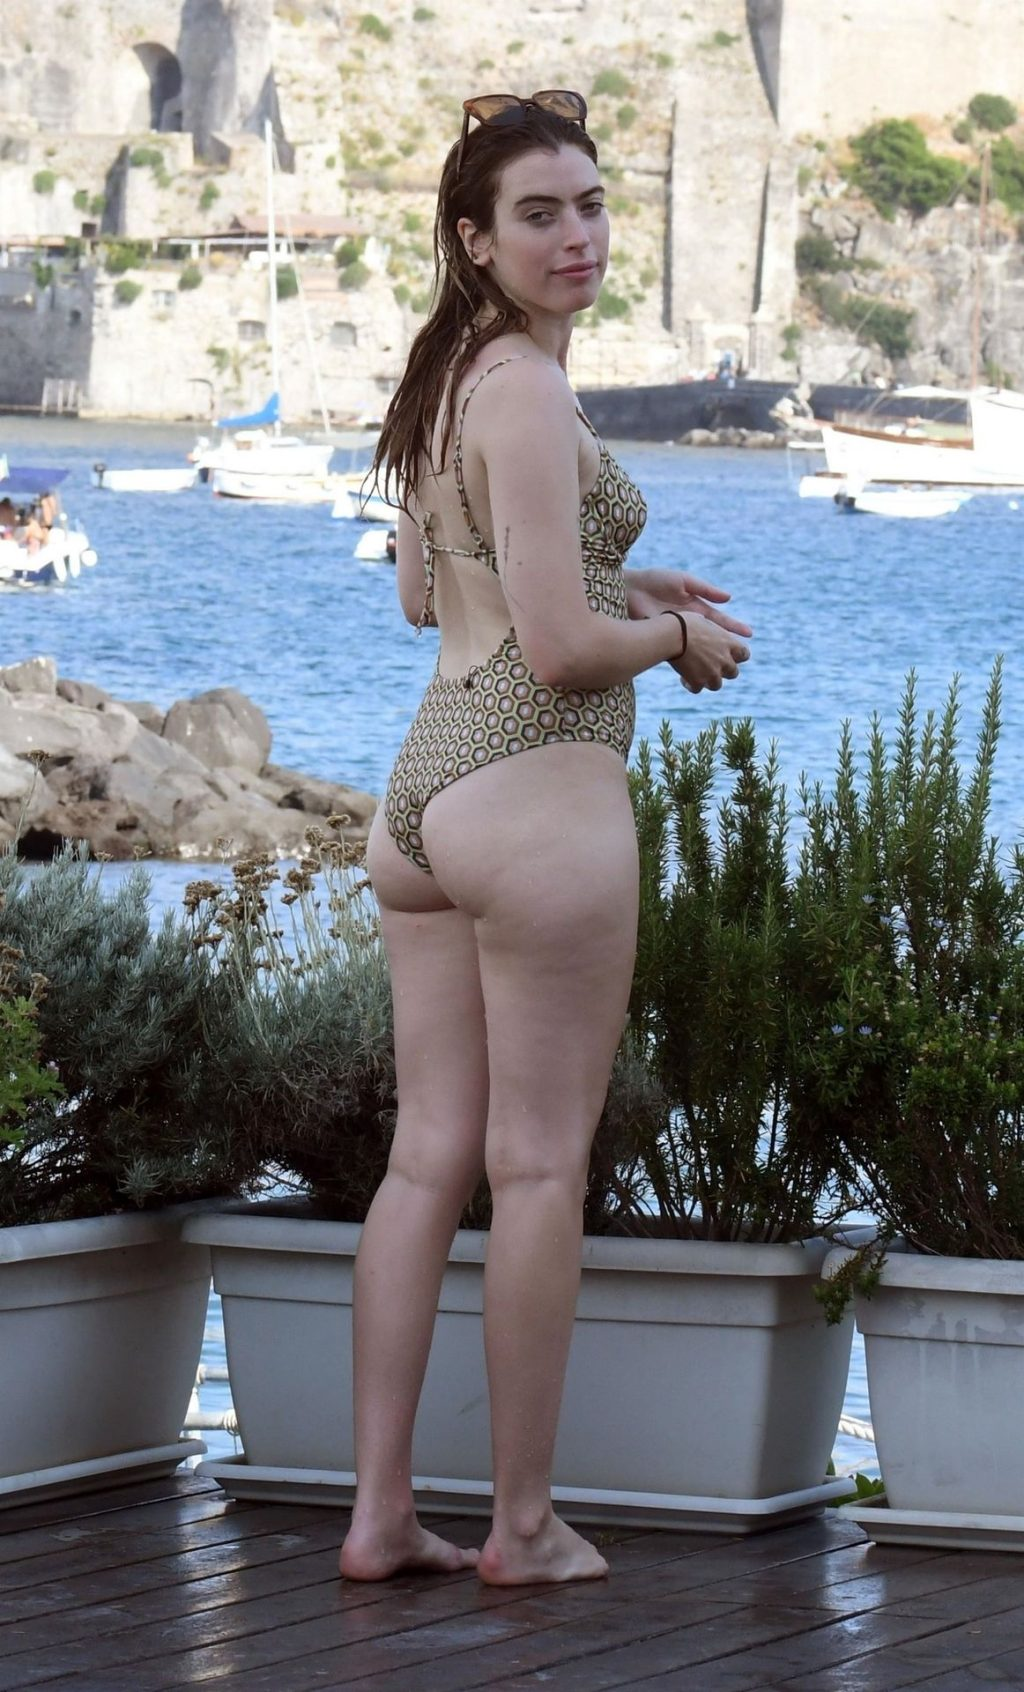 Clara McGregor Shows Off Her Sensational Figure in a Swimsuit Out in Ischia (59 Photos)